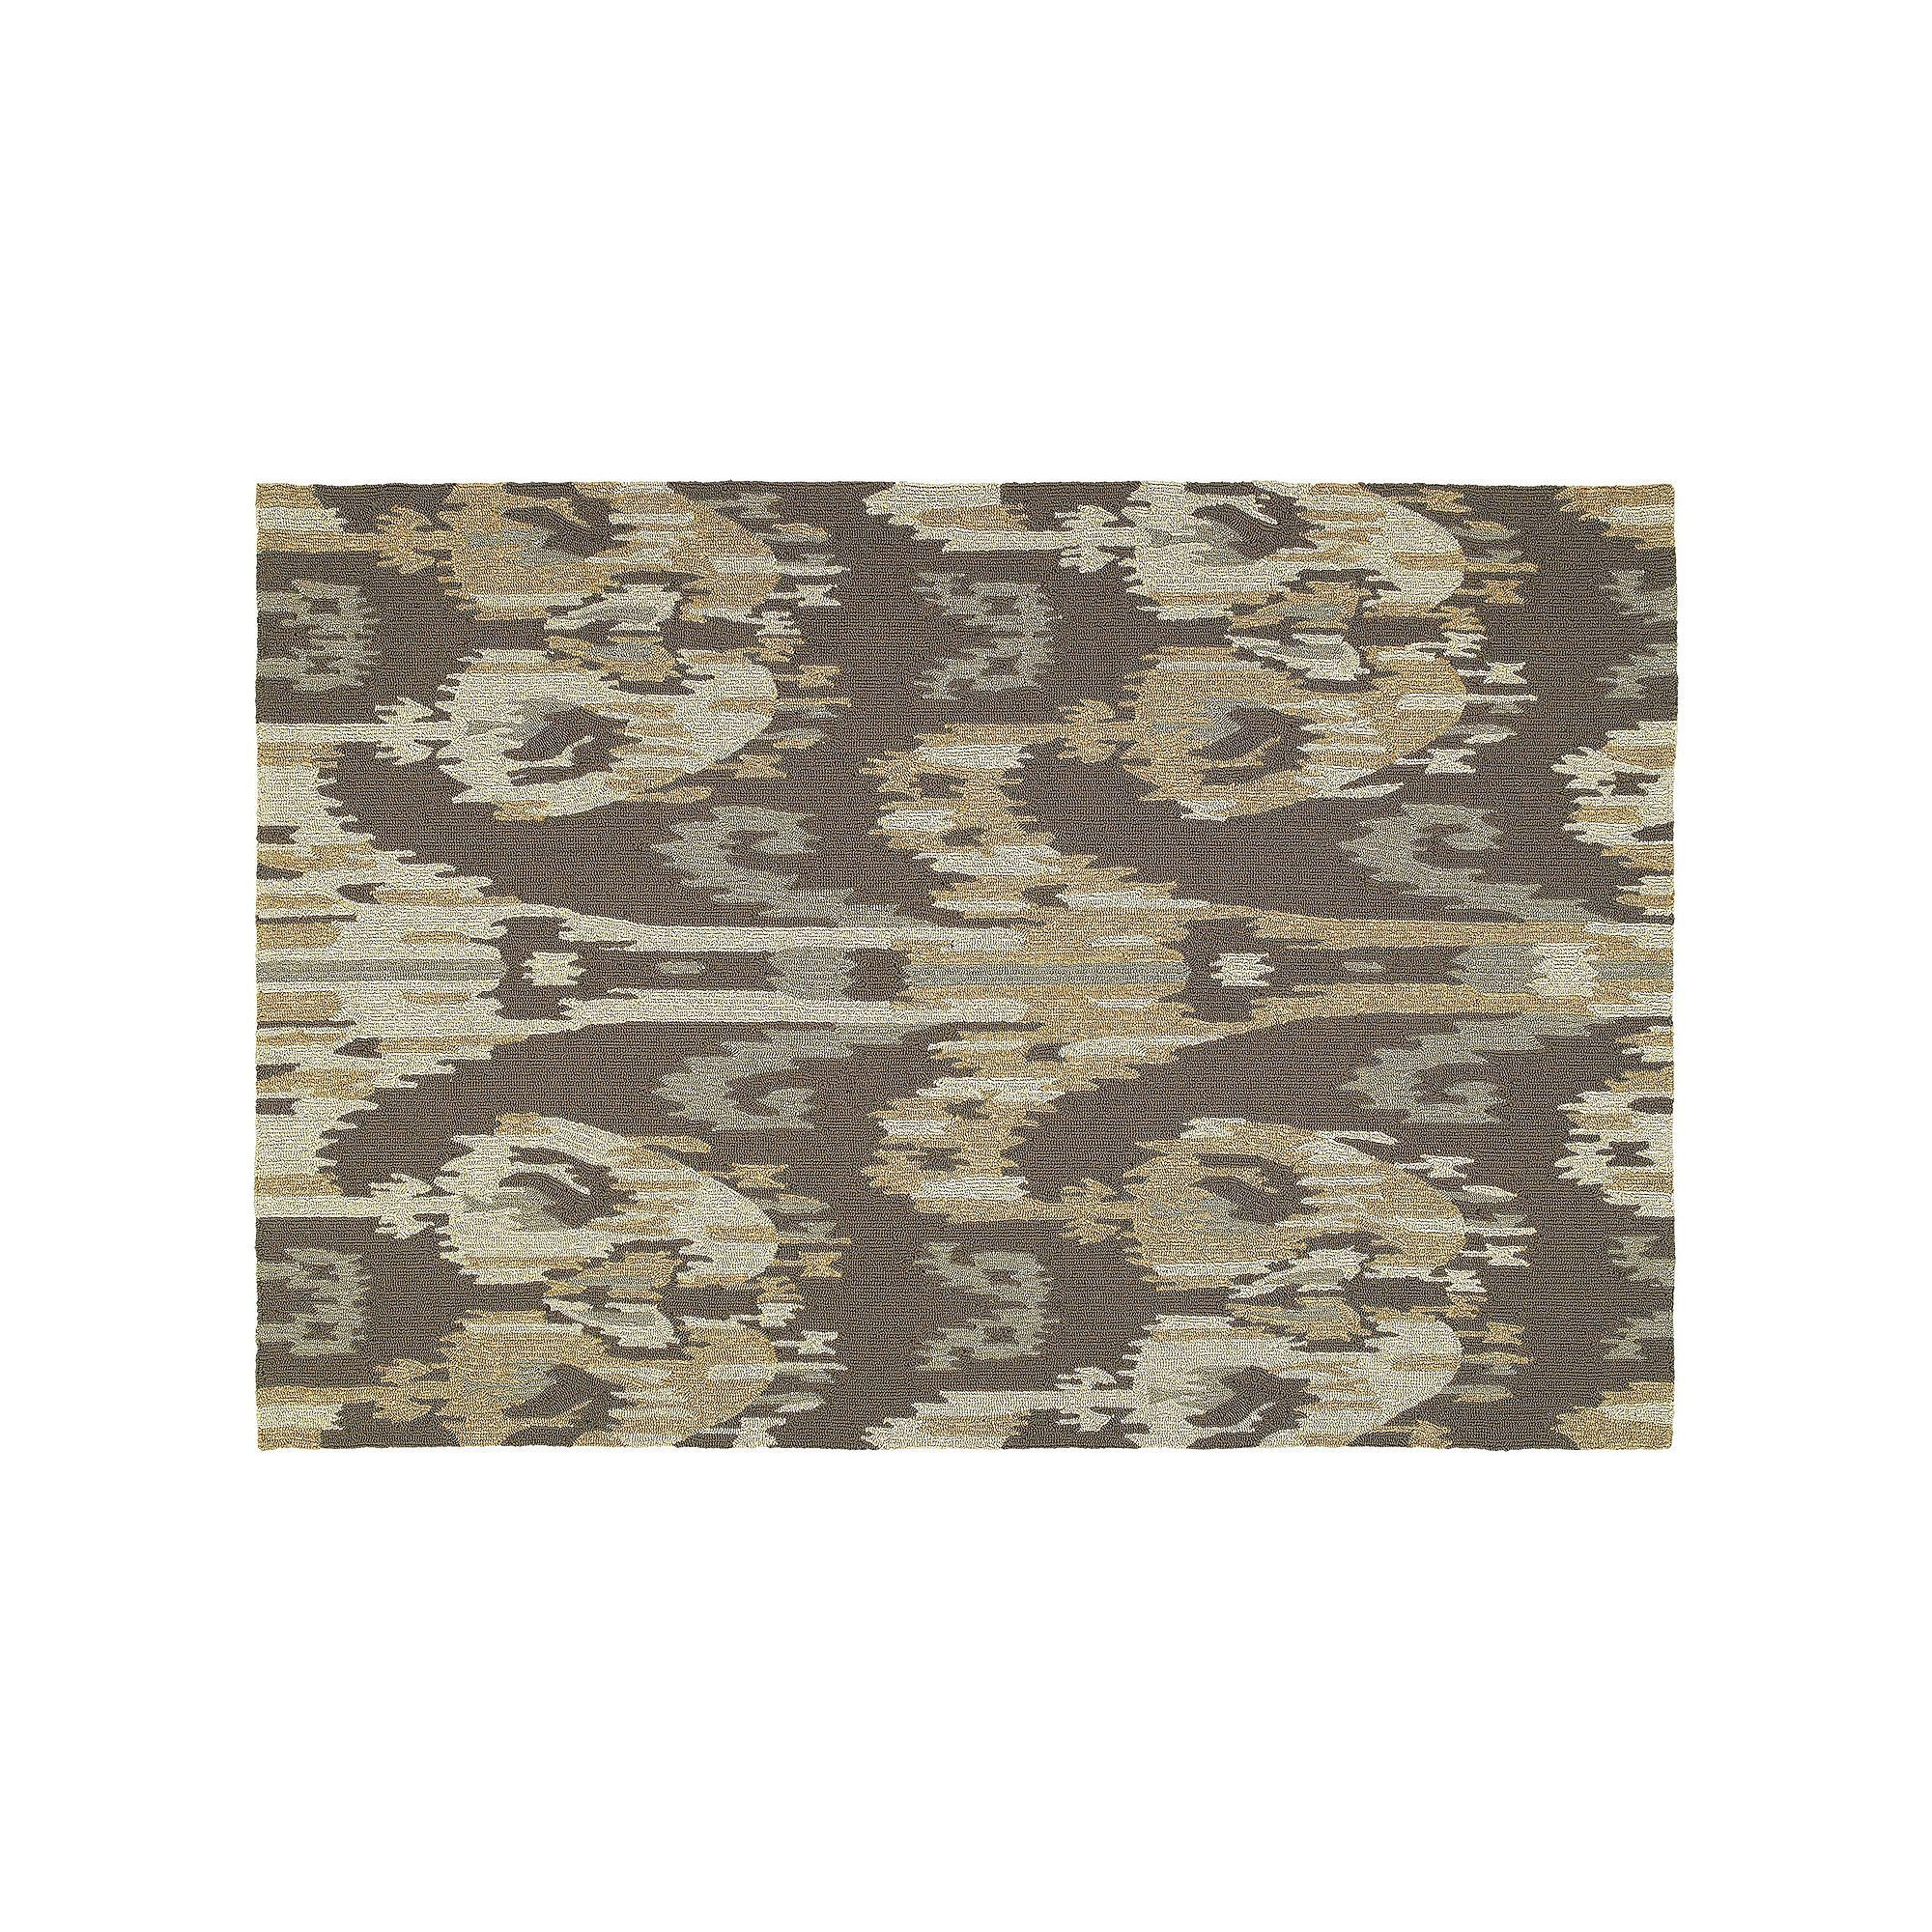 Kaleen Habitat Baja Ikat Indoor Outdoor Rug Grey Charcoal Durable Outdoorrugs Outdoor Rugs Outdoor Carpet Colorful Rugs